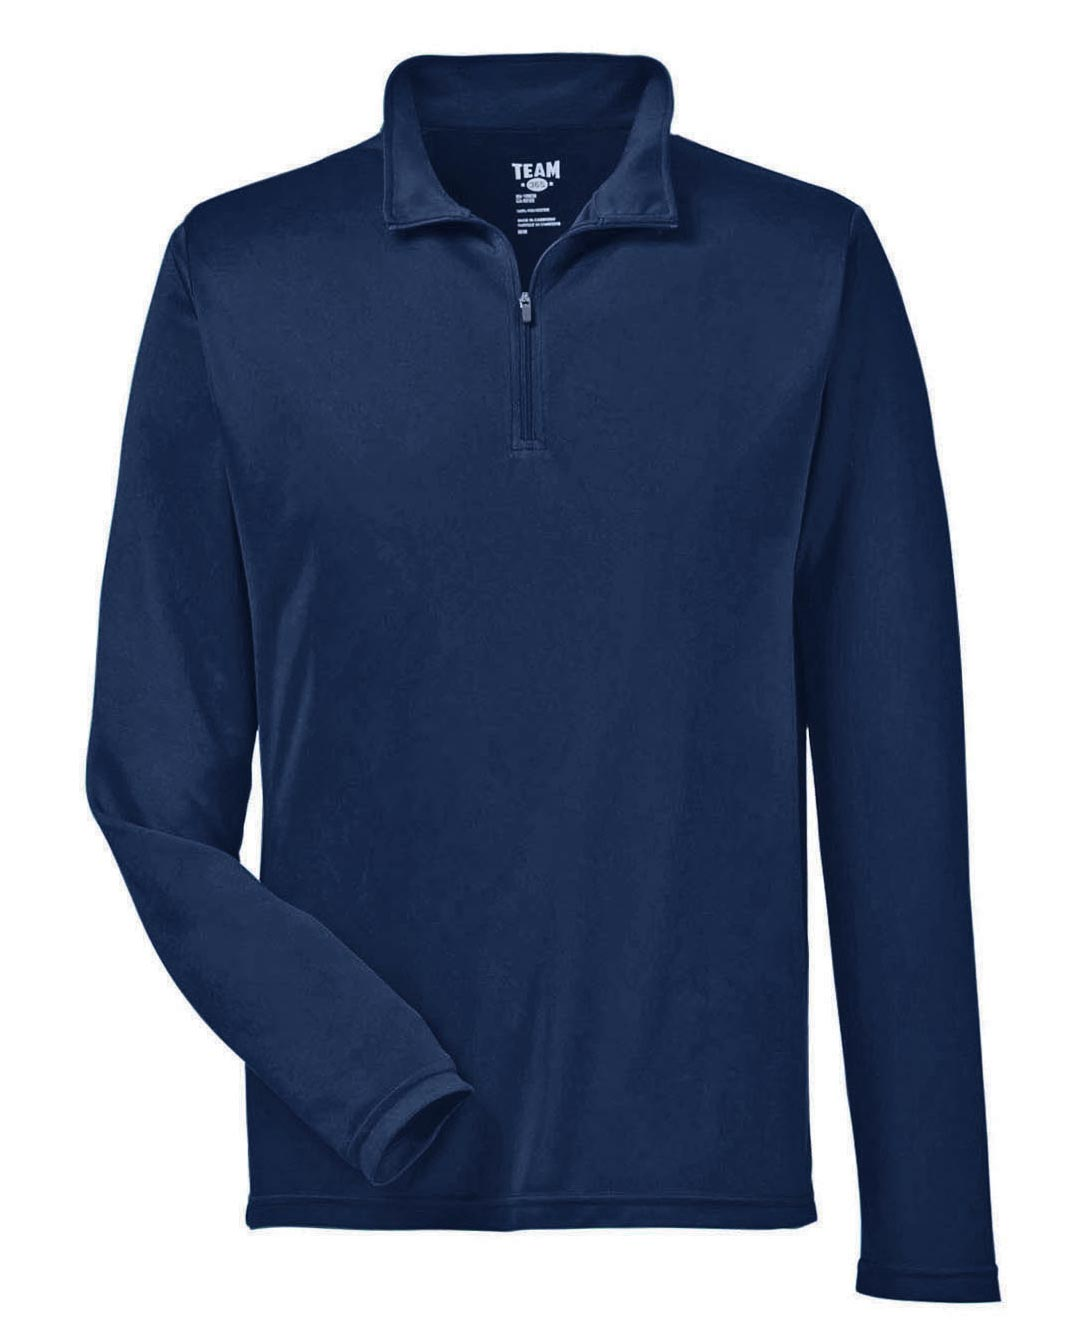 Team 365 Mens Zone Performance Quarter-Zip